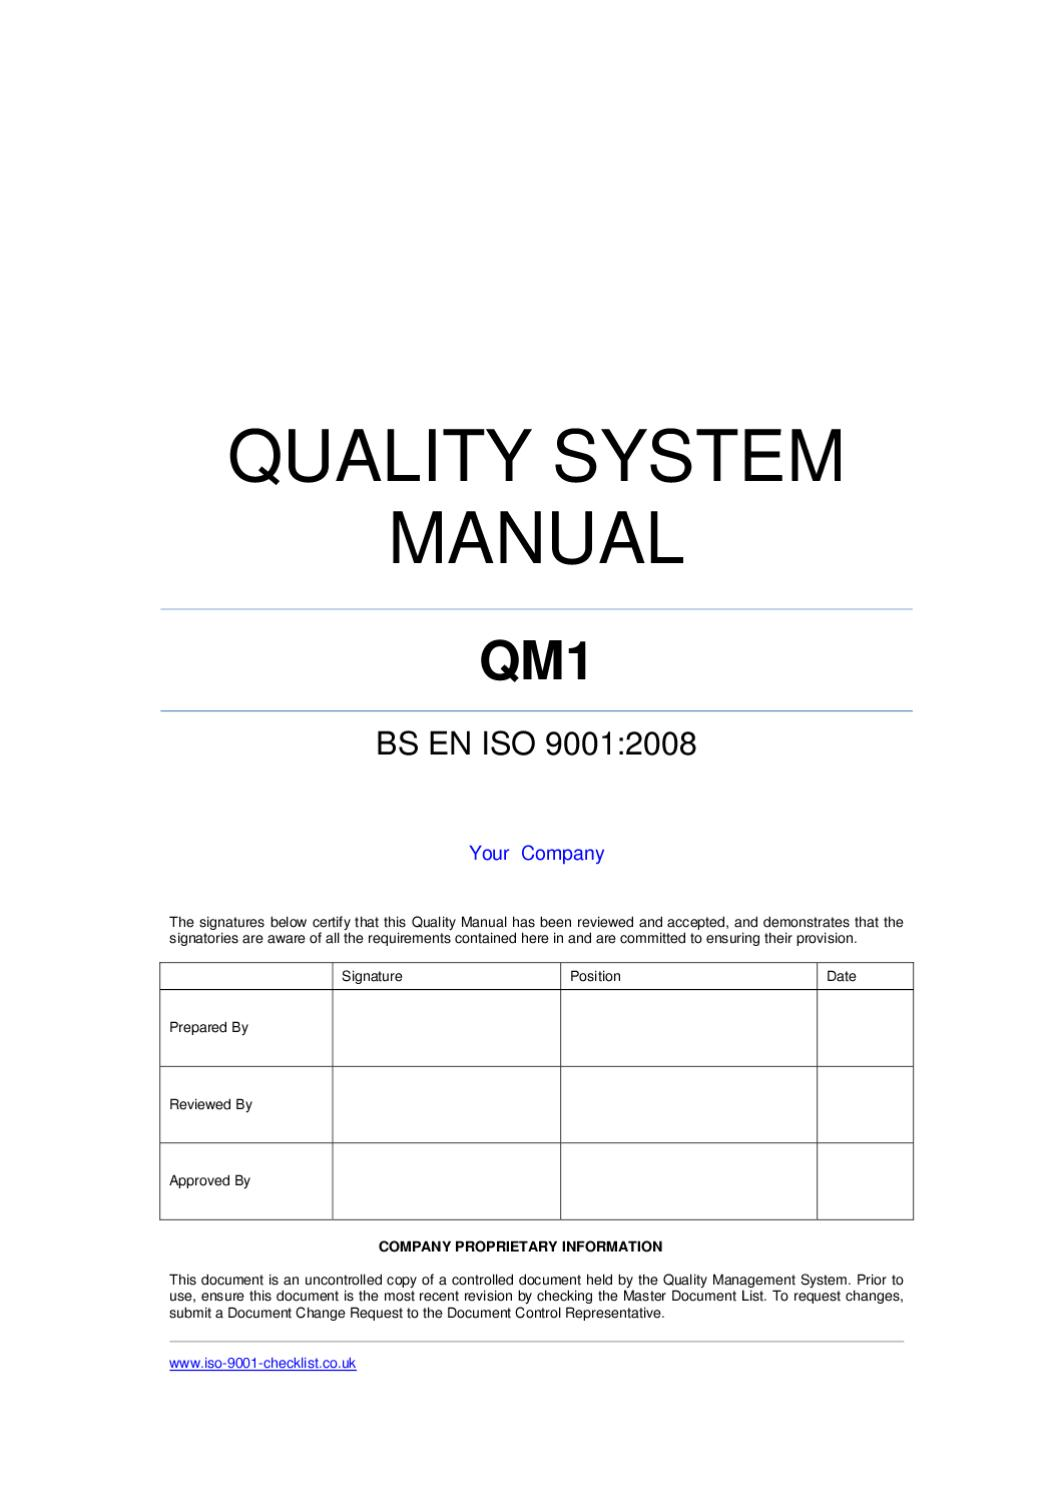 Iso 9001 Quality Manual Template